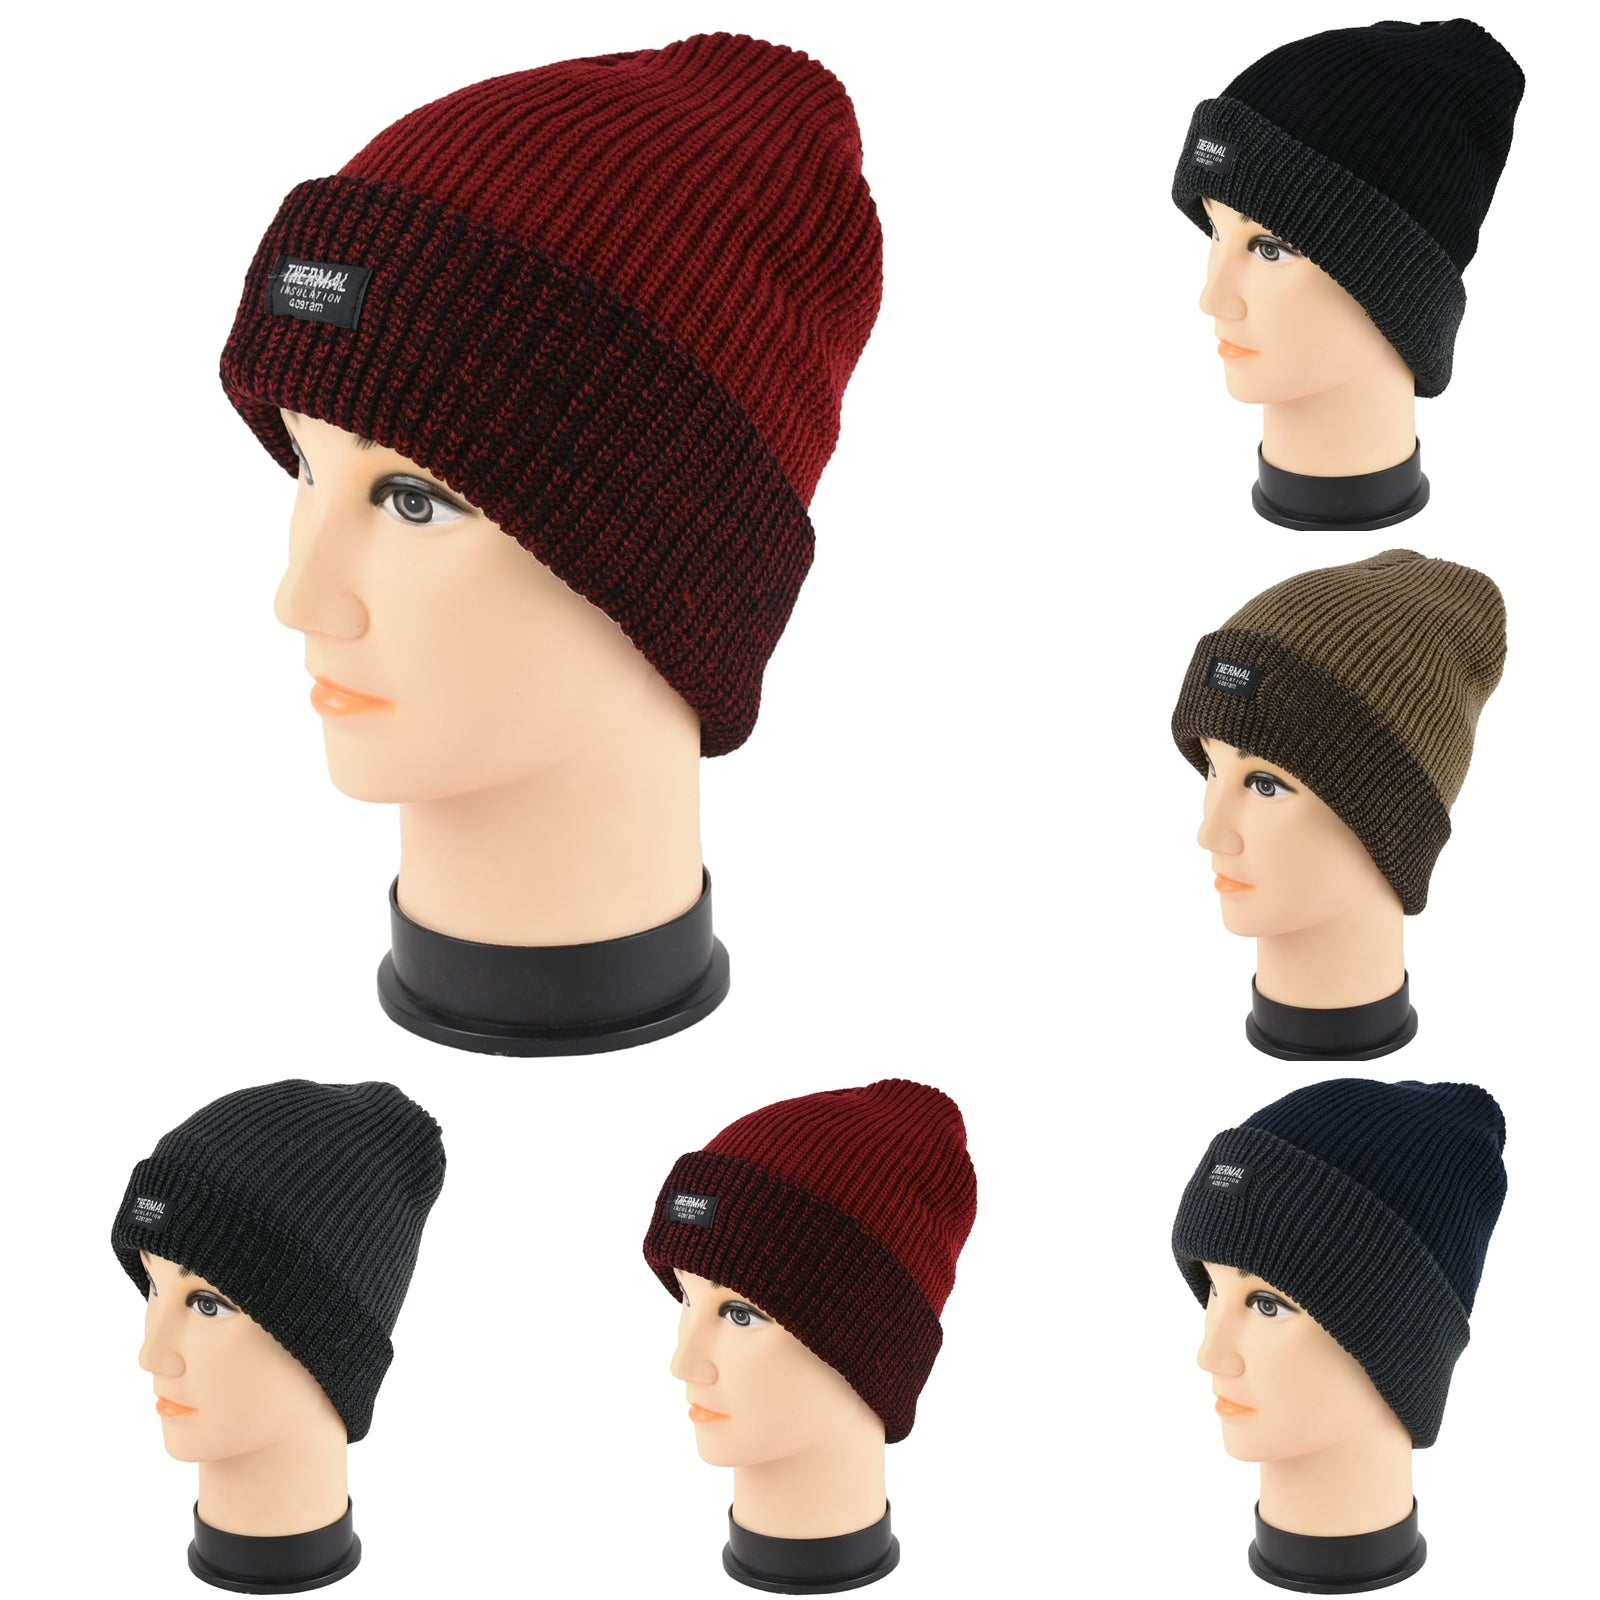 d707b2f34dc Wholesale Knit Thermal Cuffed Long Beanie Hats NYC Wholesaler – OPT ...